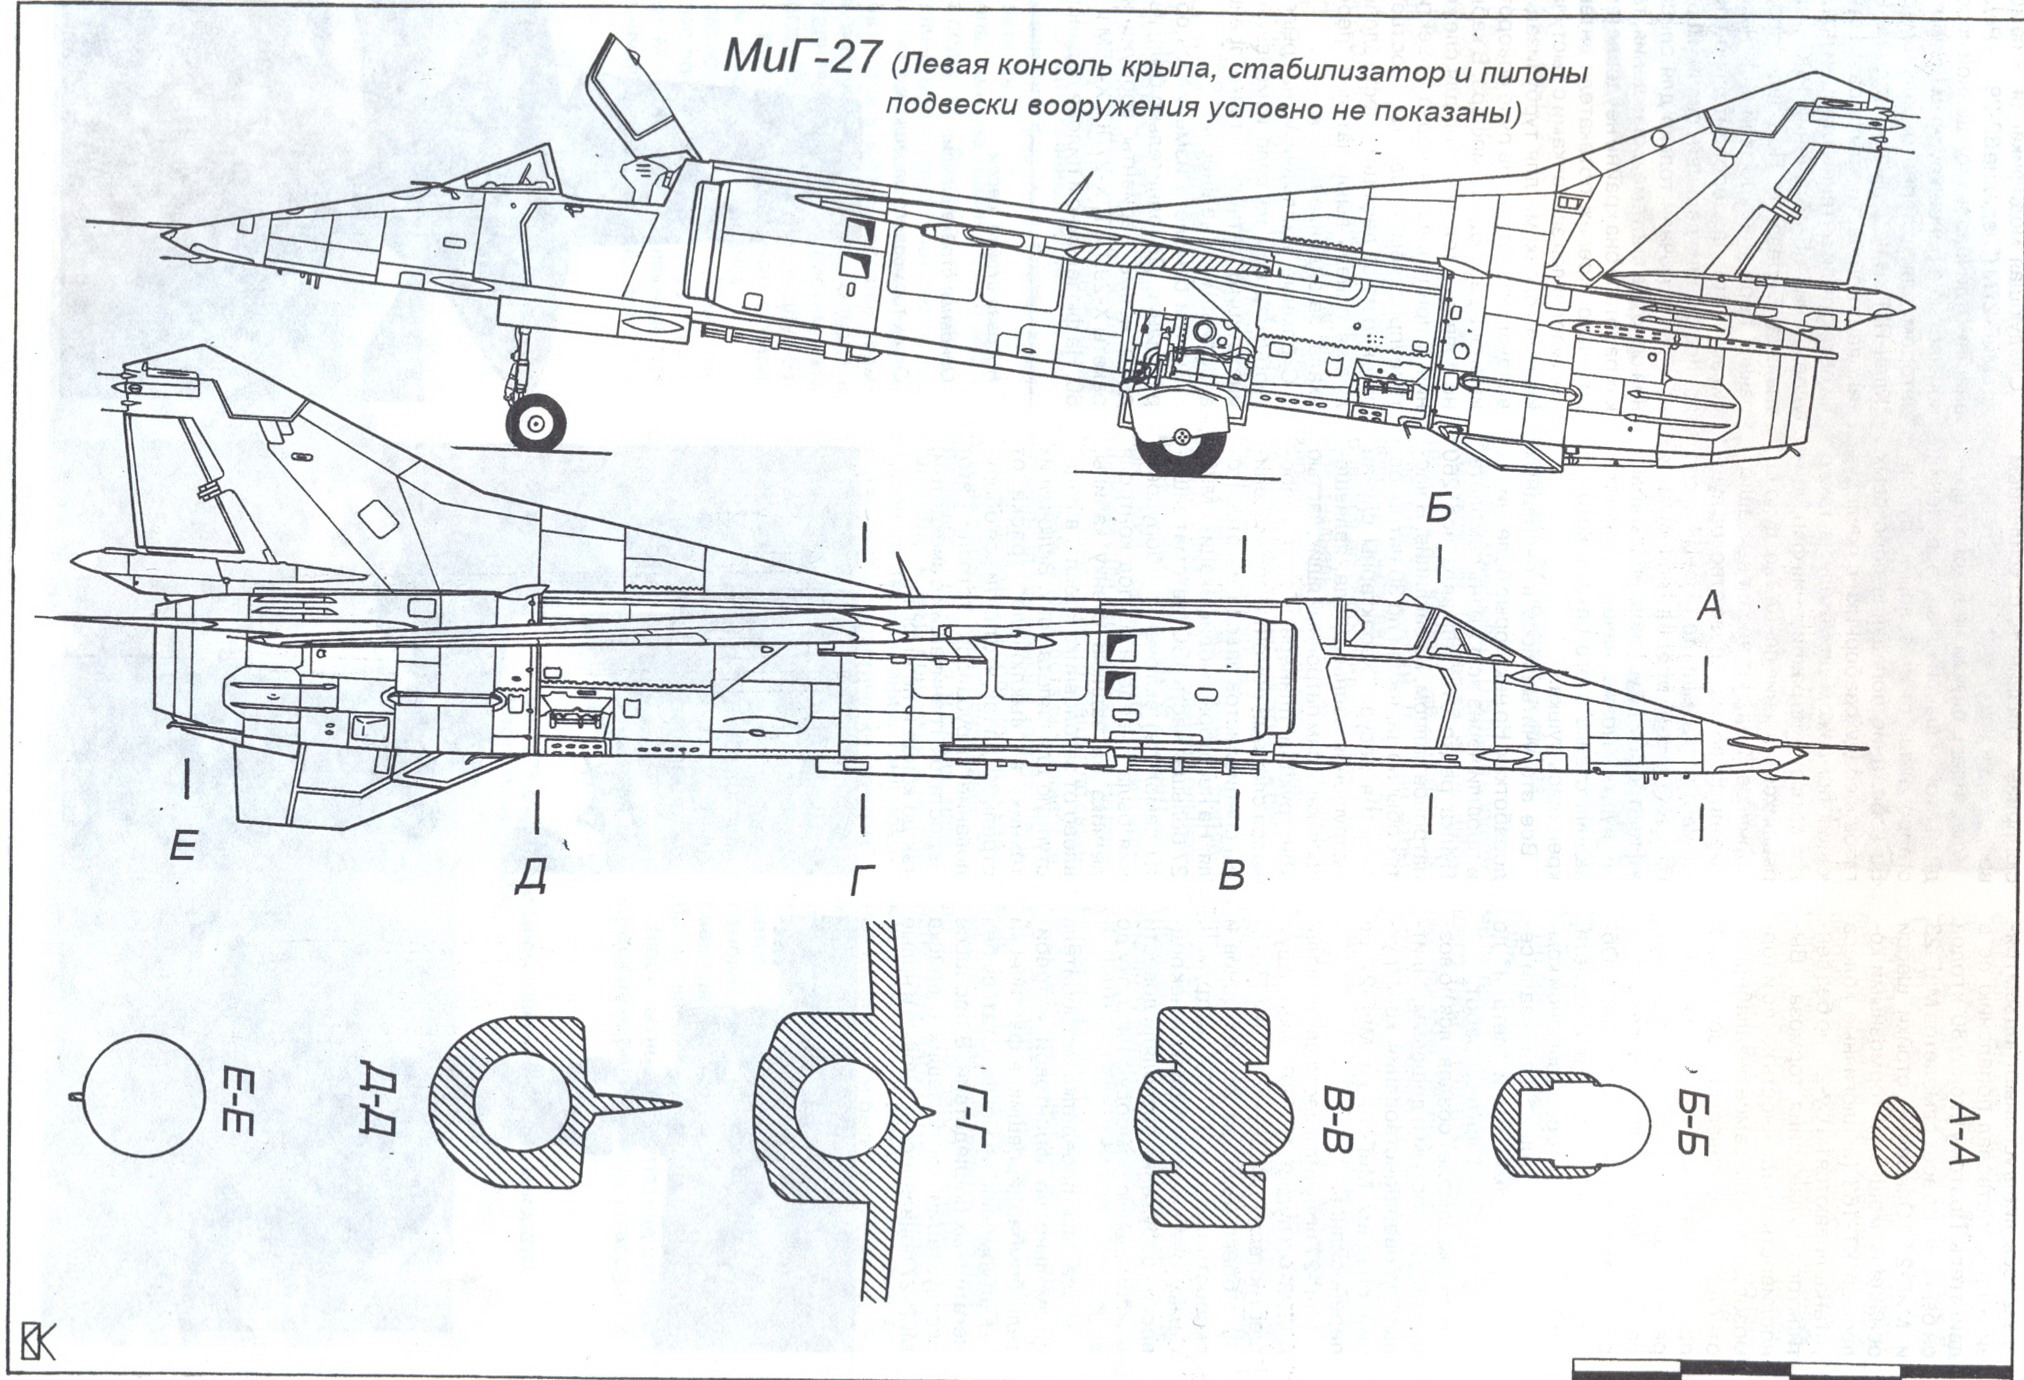 Mikoyan mig 27 blueprint download free blueprint for 3d for Free 3d blueprints